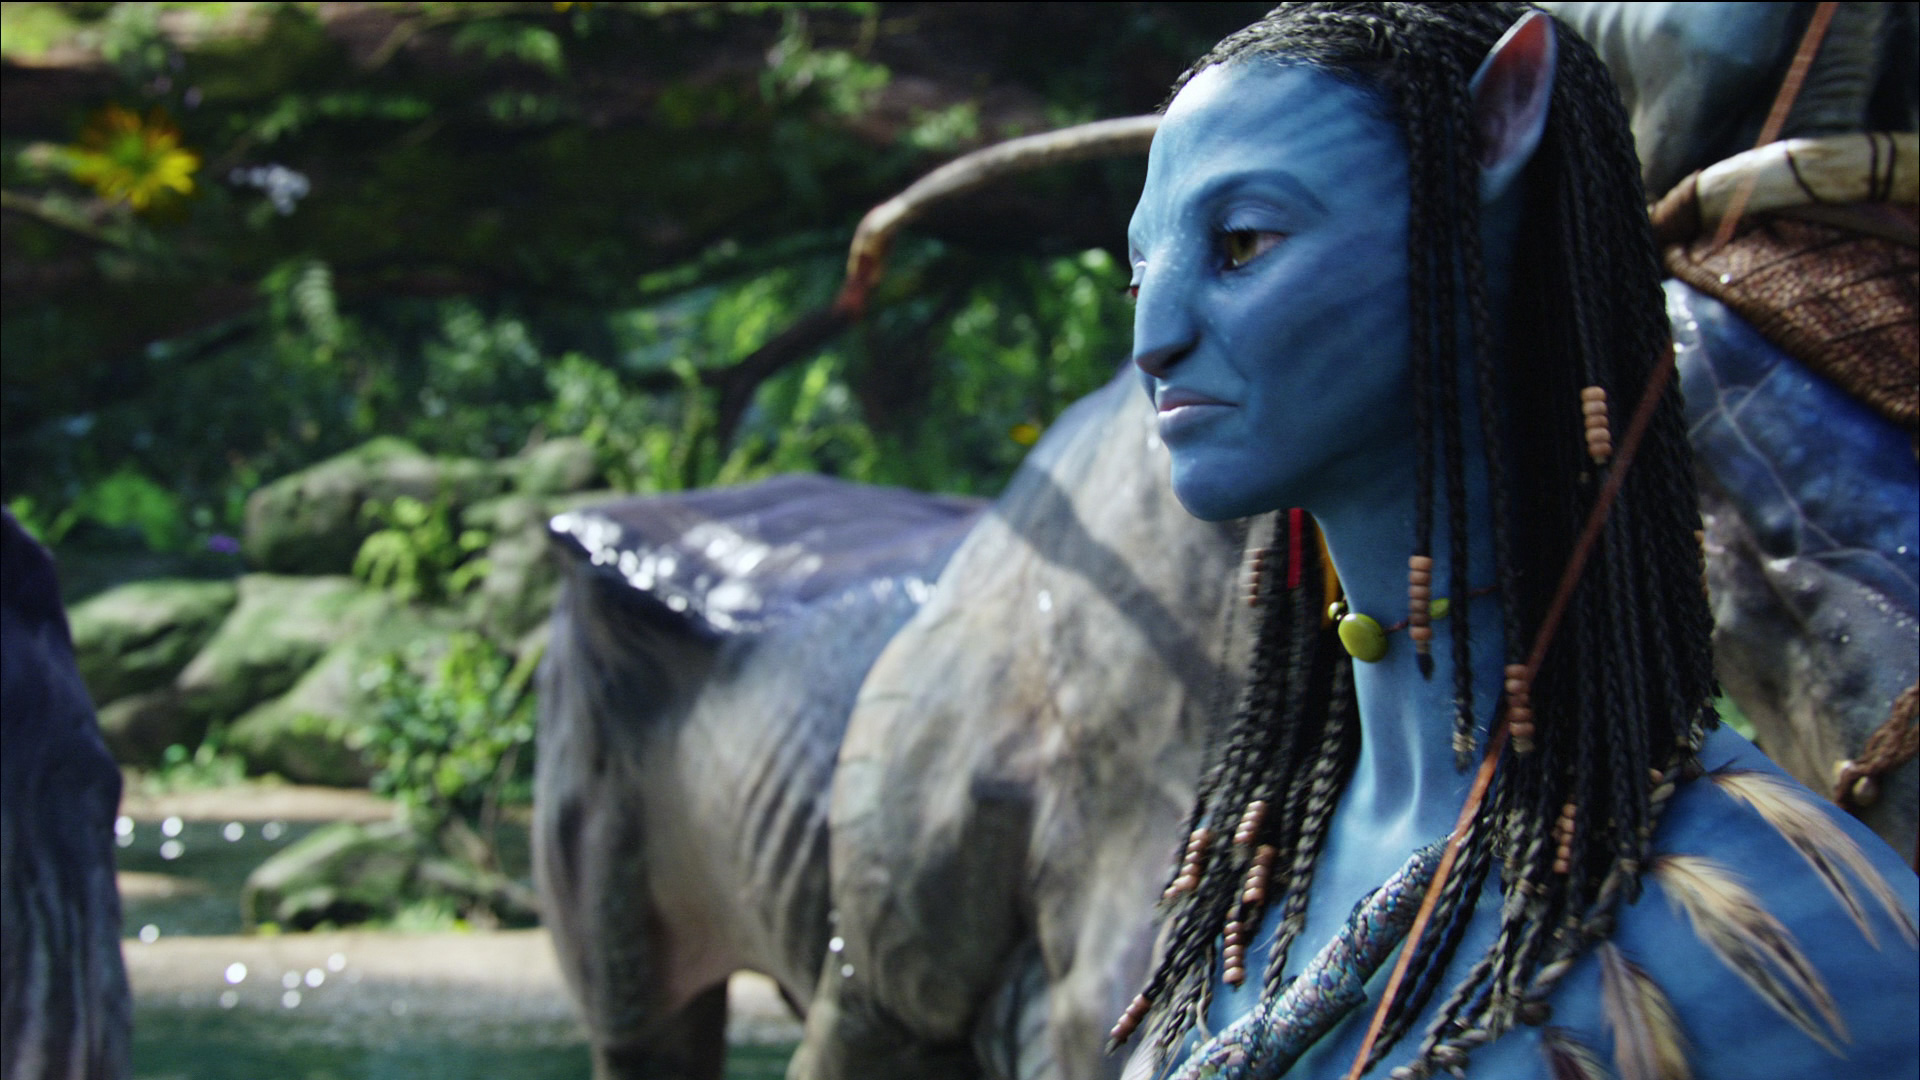 avatar film techniques Near the beginning of the film jake is submissive to the rda and colonel quaritch who is head of security especially refers to the na'vi's ways as tree hugger crap - suggests that he has no respect for them or their beliefs after jake has been taught the ways of the na'vi he learns to respect.